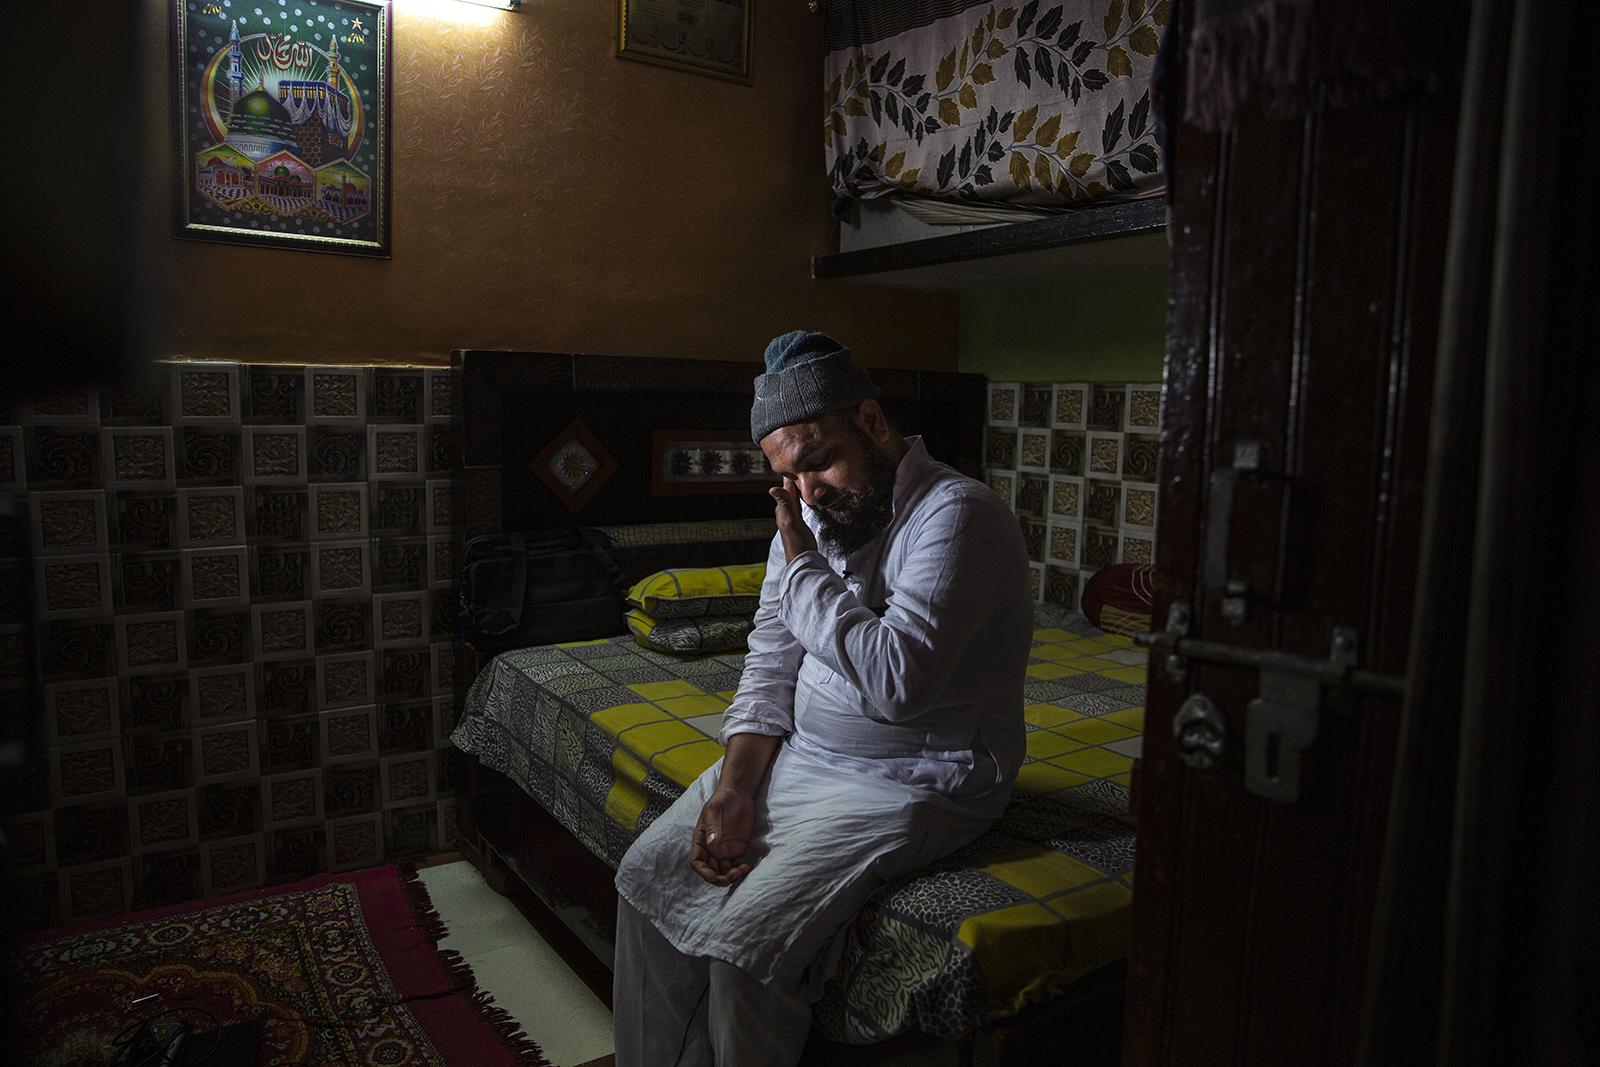 Haroon, who saw his 32 year-old brother being shot and killed by his Hindu neighbors during the February 2020 communal riots, breaks down while speaking to Associated Press inside his home in North Ghonda, one of the worst riot affected neighborhoods, in New Delhi, India, Friday, Feb. 19, 2021. As the first anniversary of bloody communal riots that convulsed the Indian capital approaches, Muslim victims are still shaken and struggling to make sense of their struggle to seek justice. (AP Photo/Altaf Qadri)